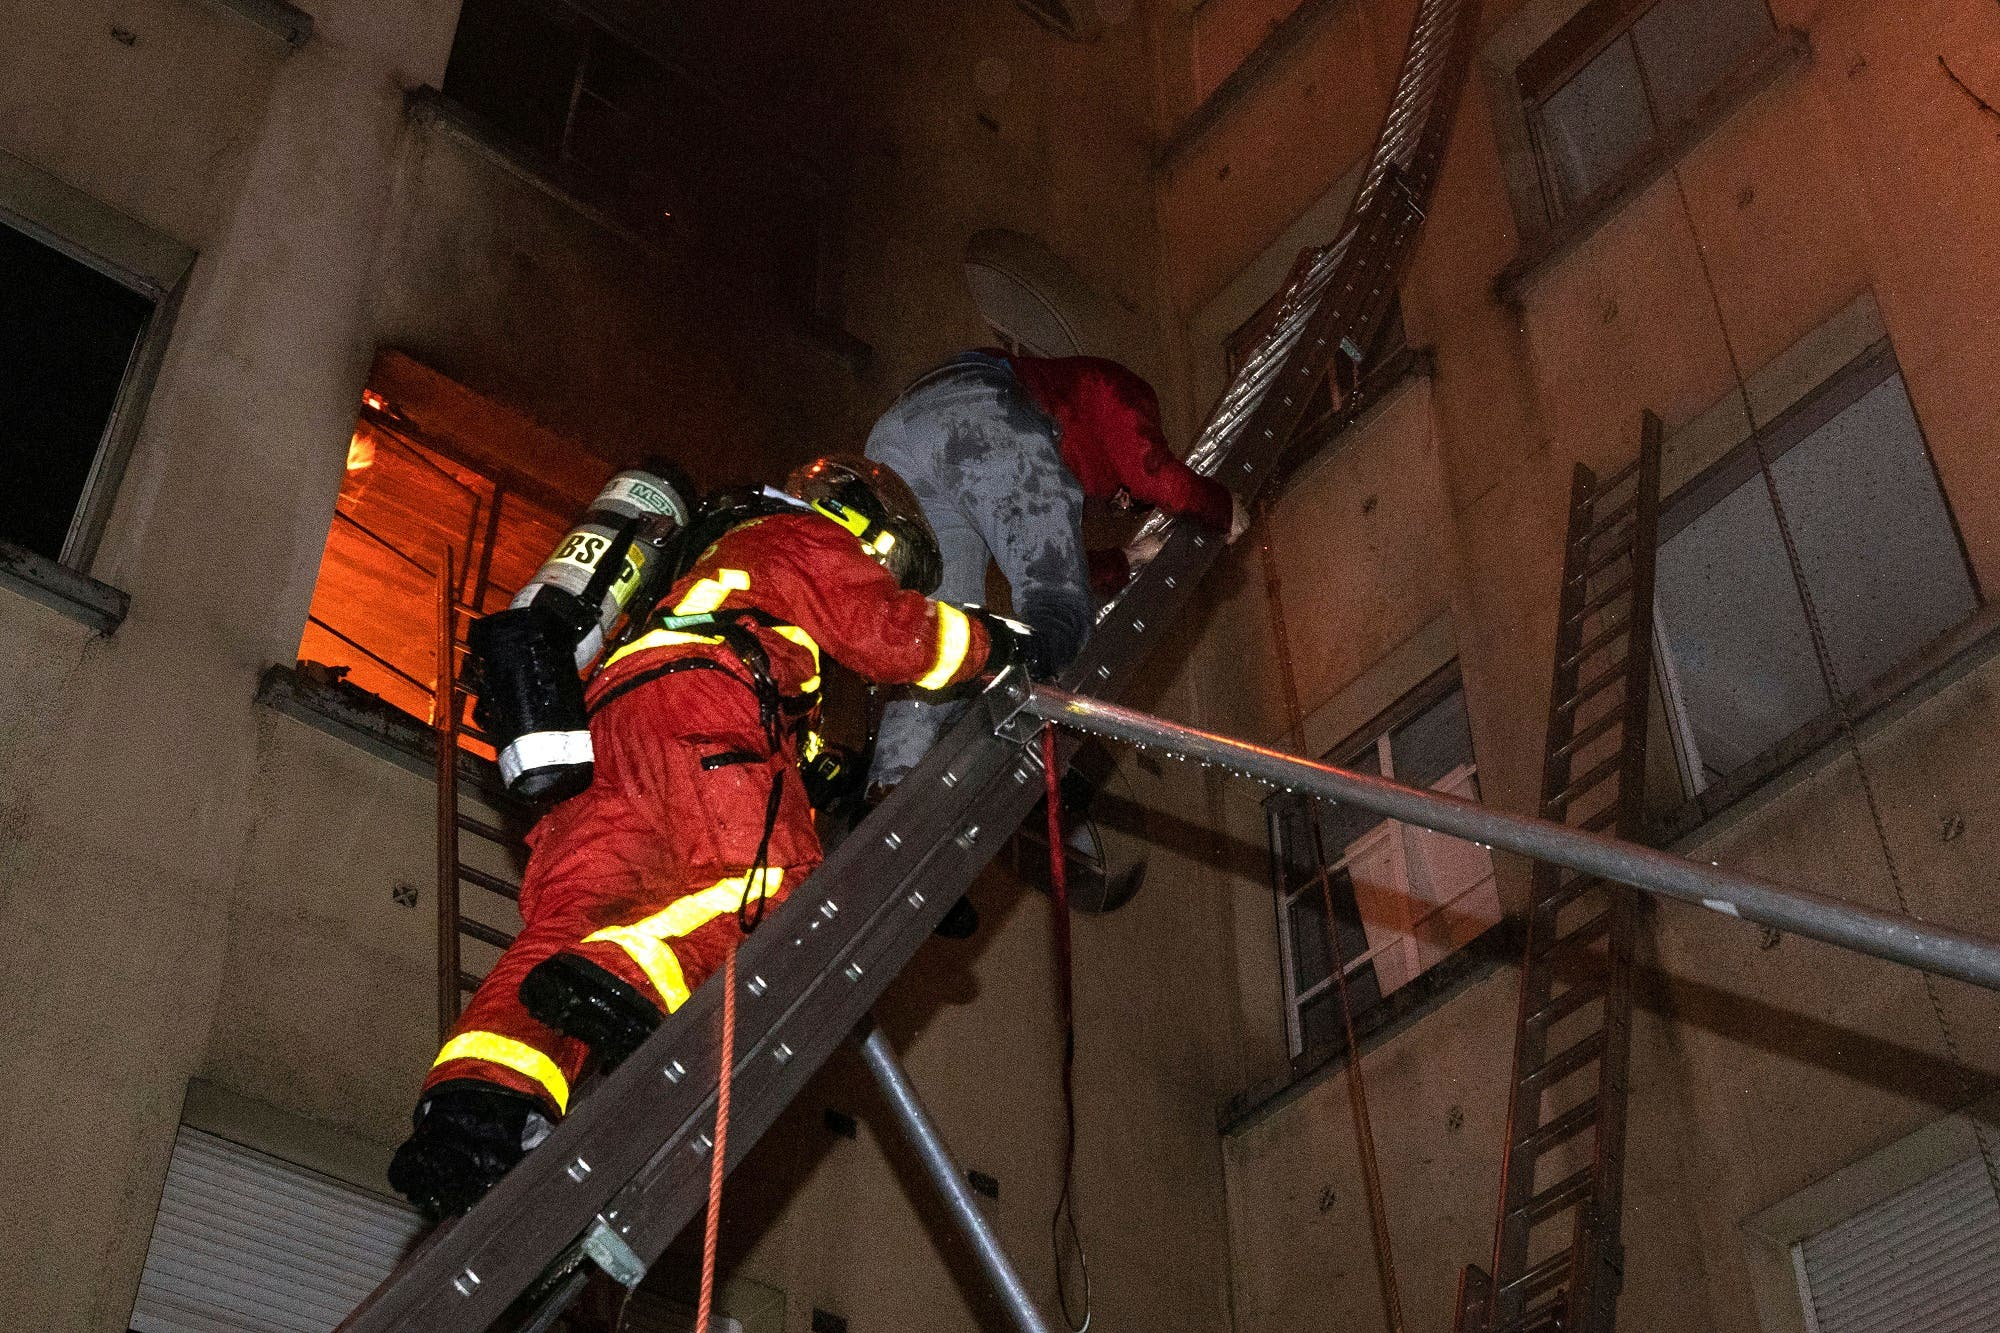 One person is in life-threatening condition and 30 others were injured in the blaze. (AP)